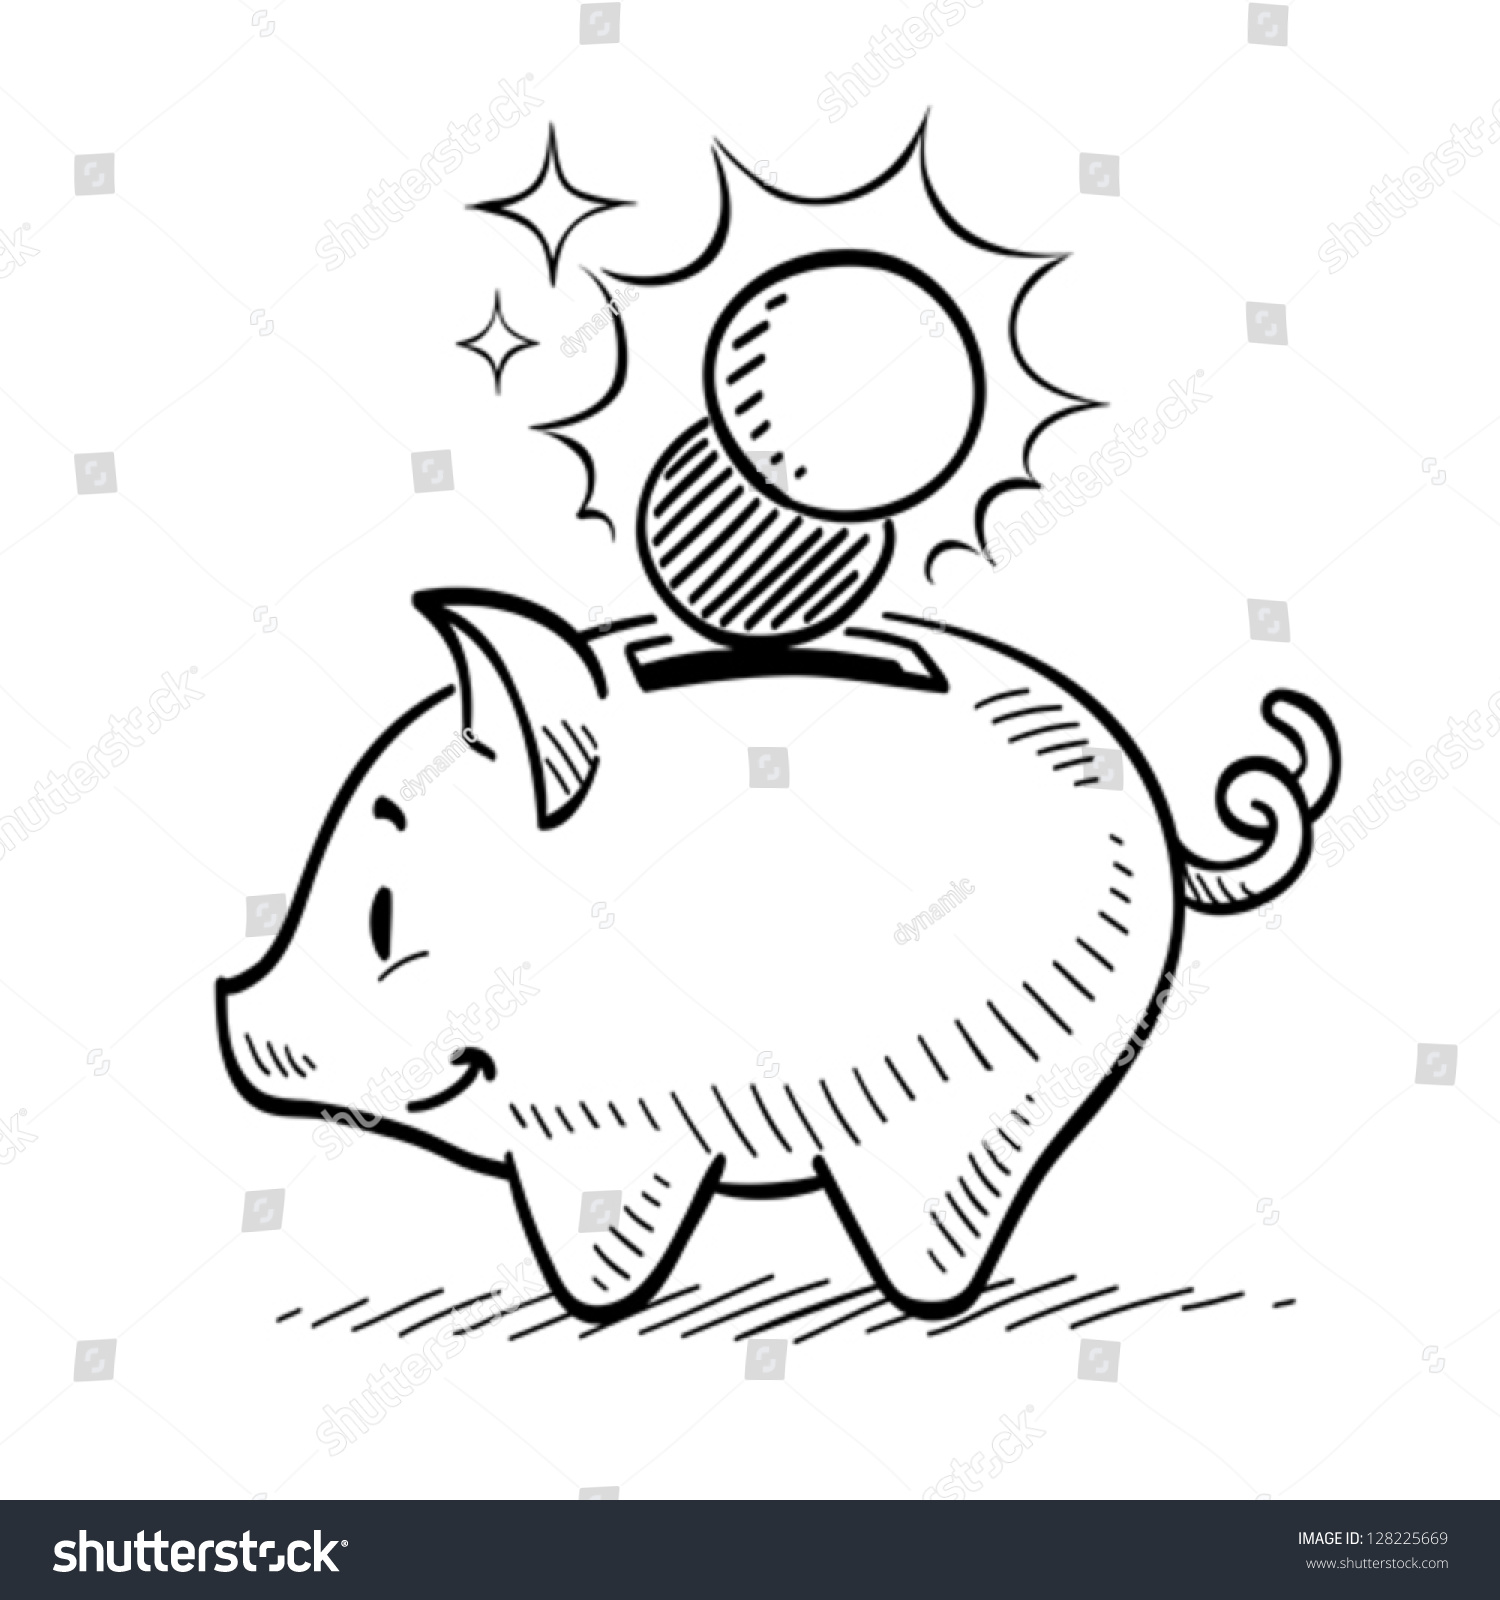 Line Drawing Piggy Bank : Piggy bank stock vector shutterstock